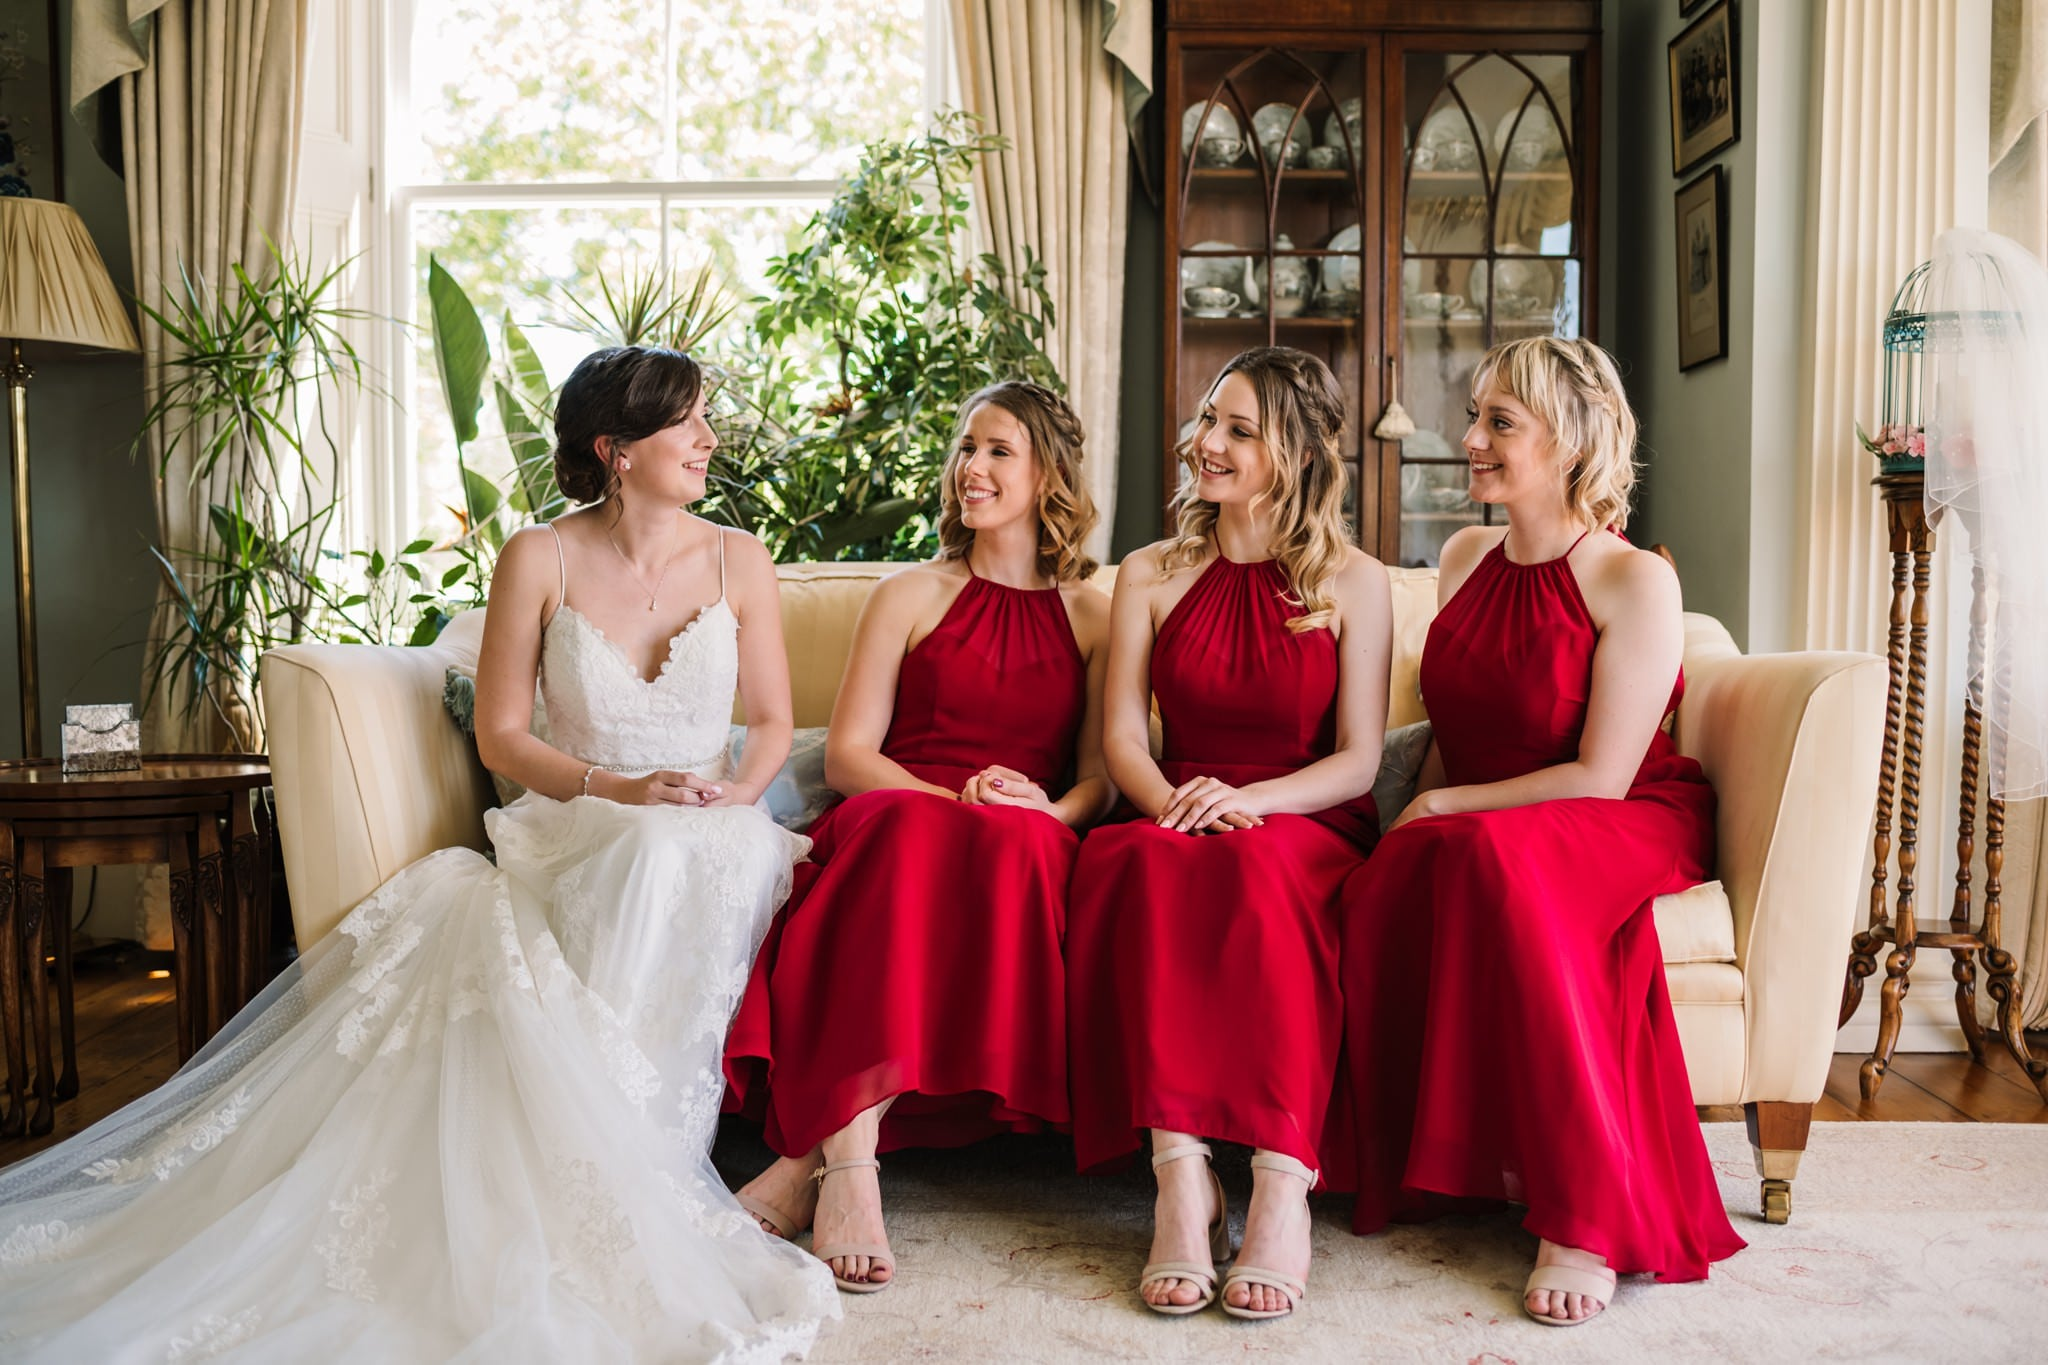 Bride and bridesmaids at Parley Manor Wedding